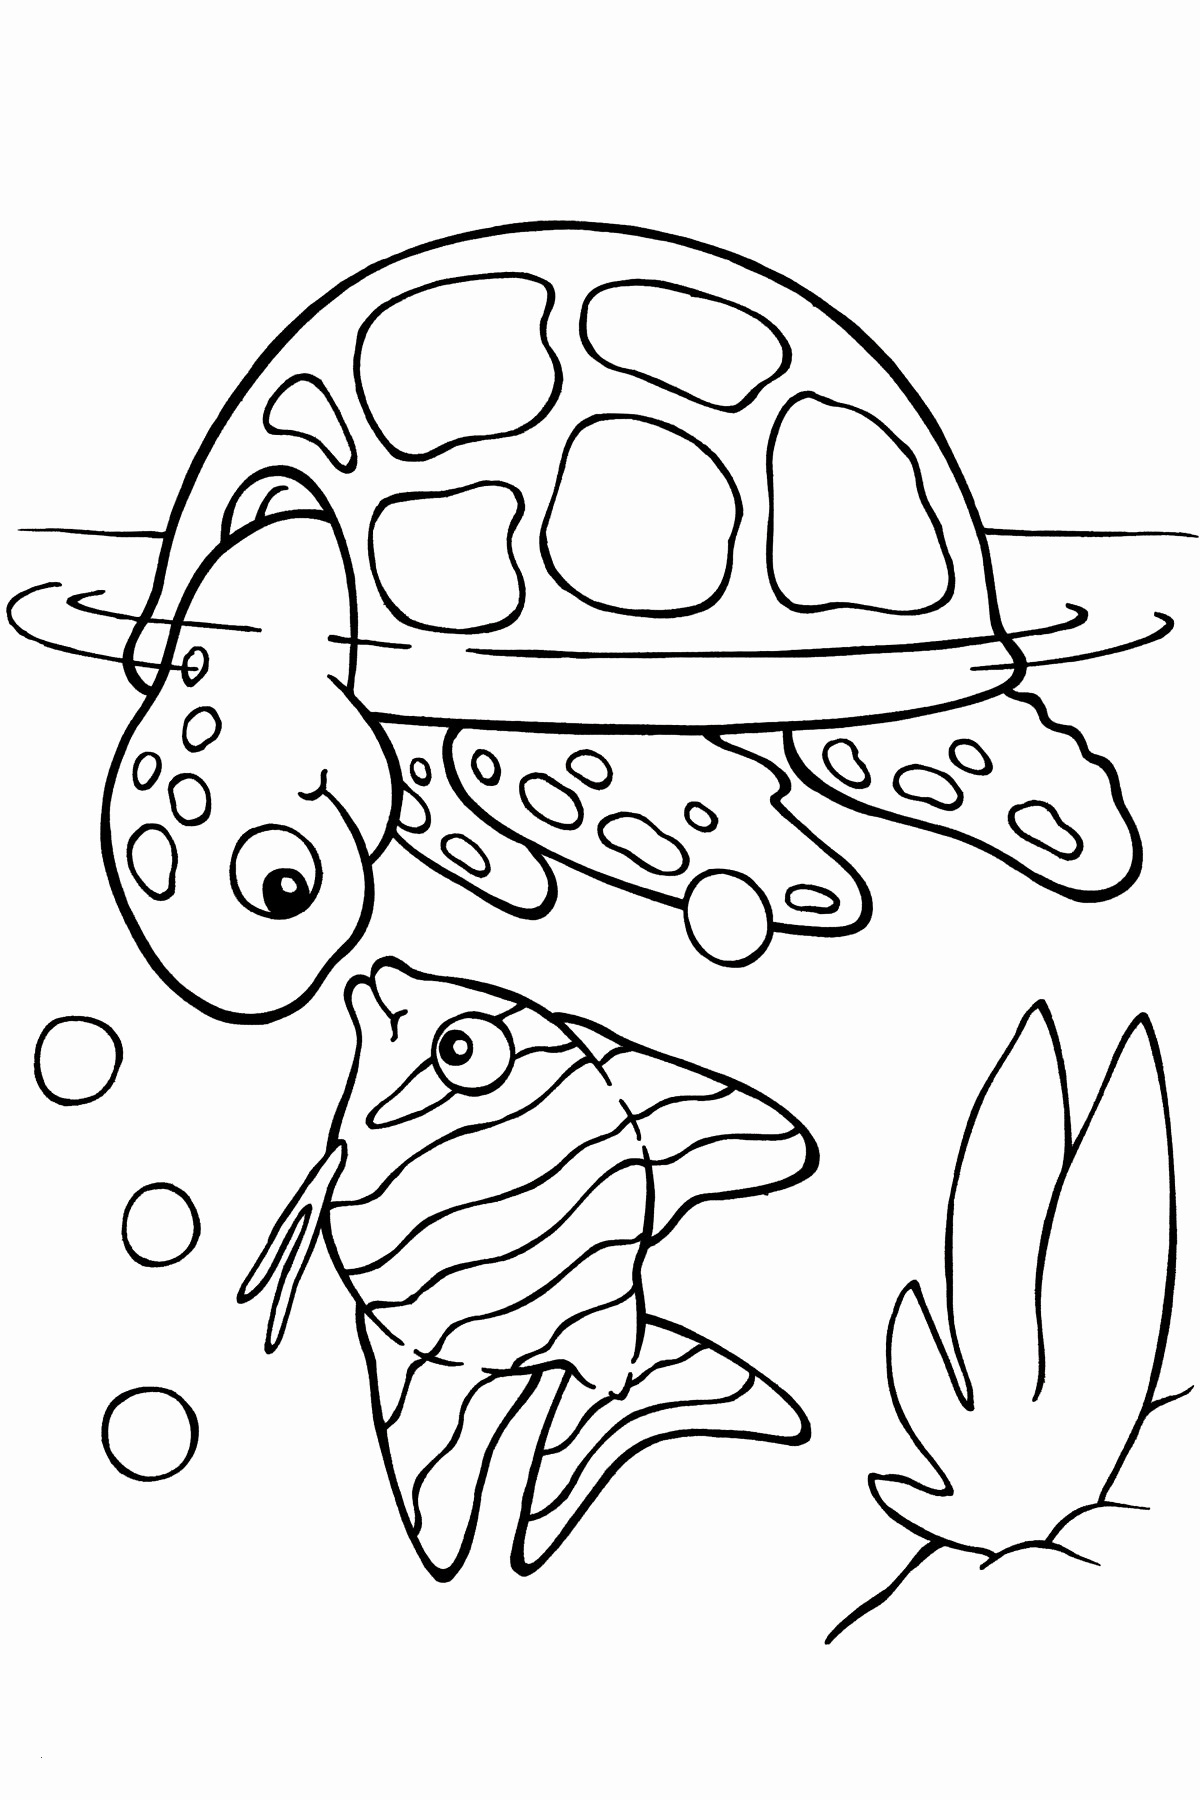 Noah's Ark Coloring Pages Printable  Collection 19q - Free Download